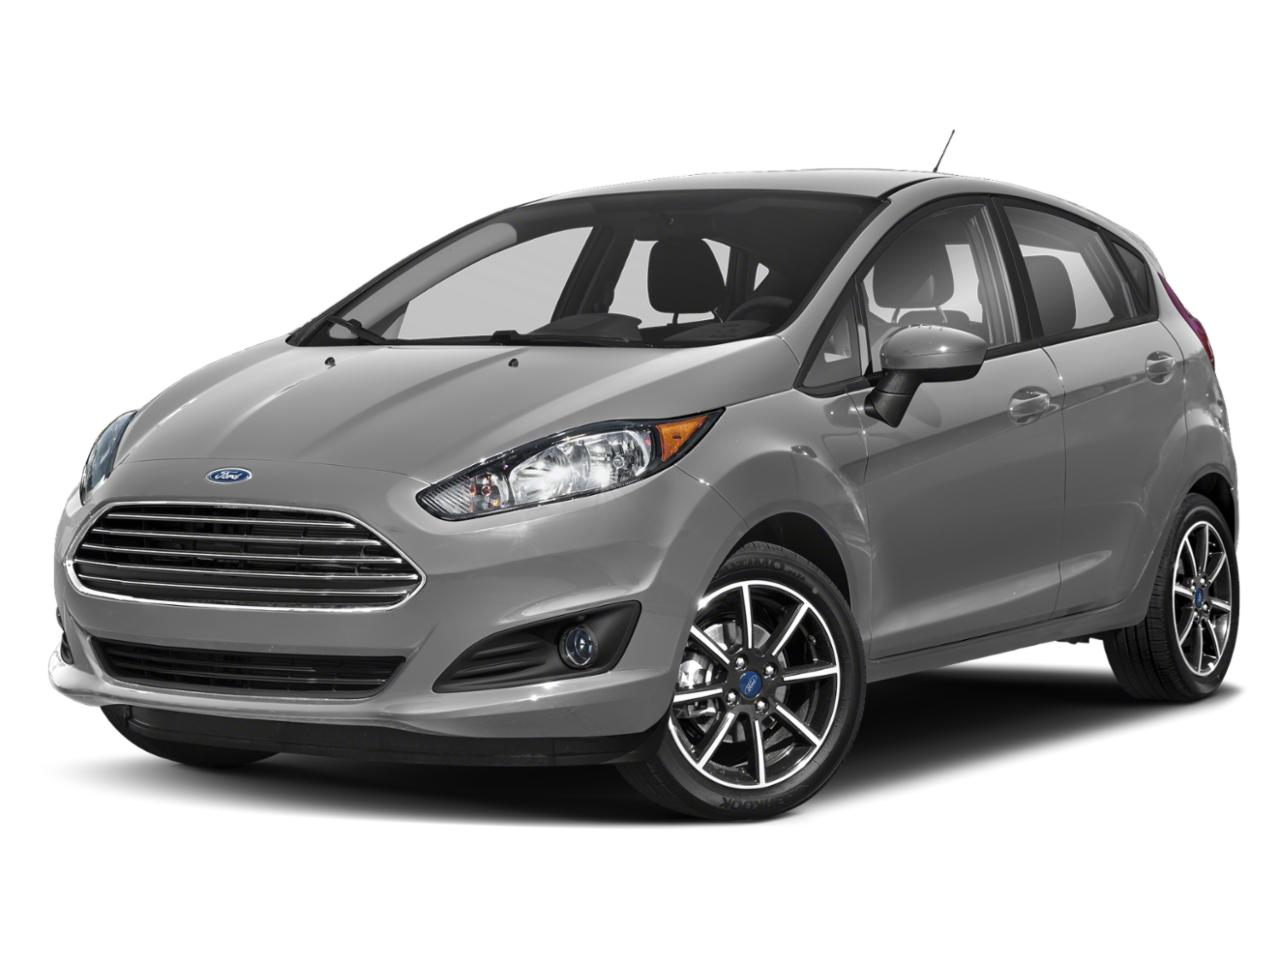 2019 Ford Fiesta Vehicle Photo in Owensboro, KY 42302